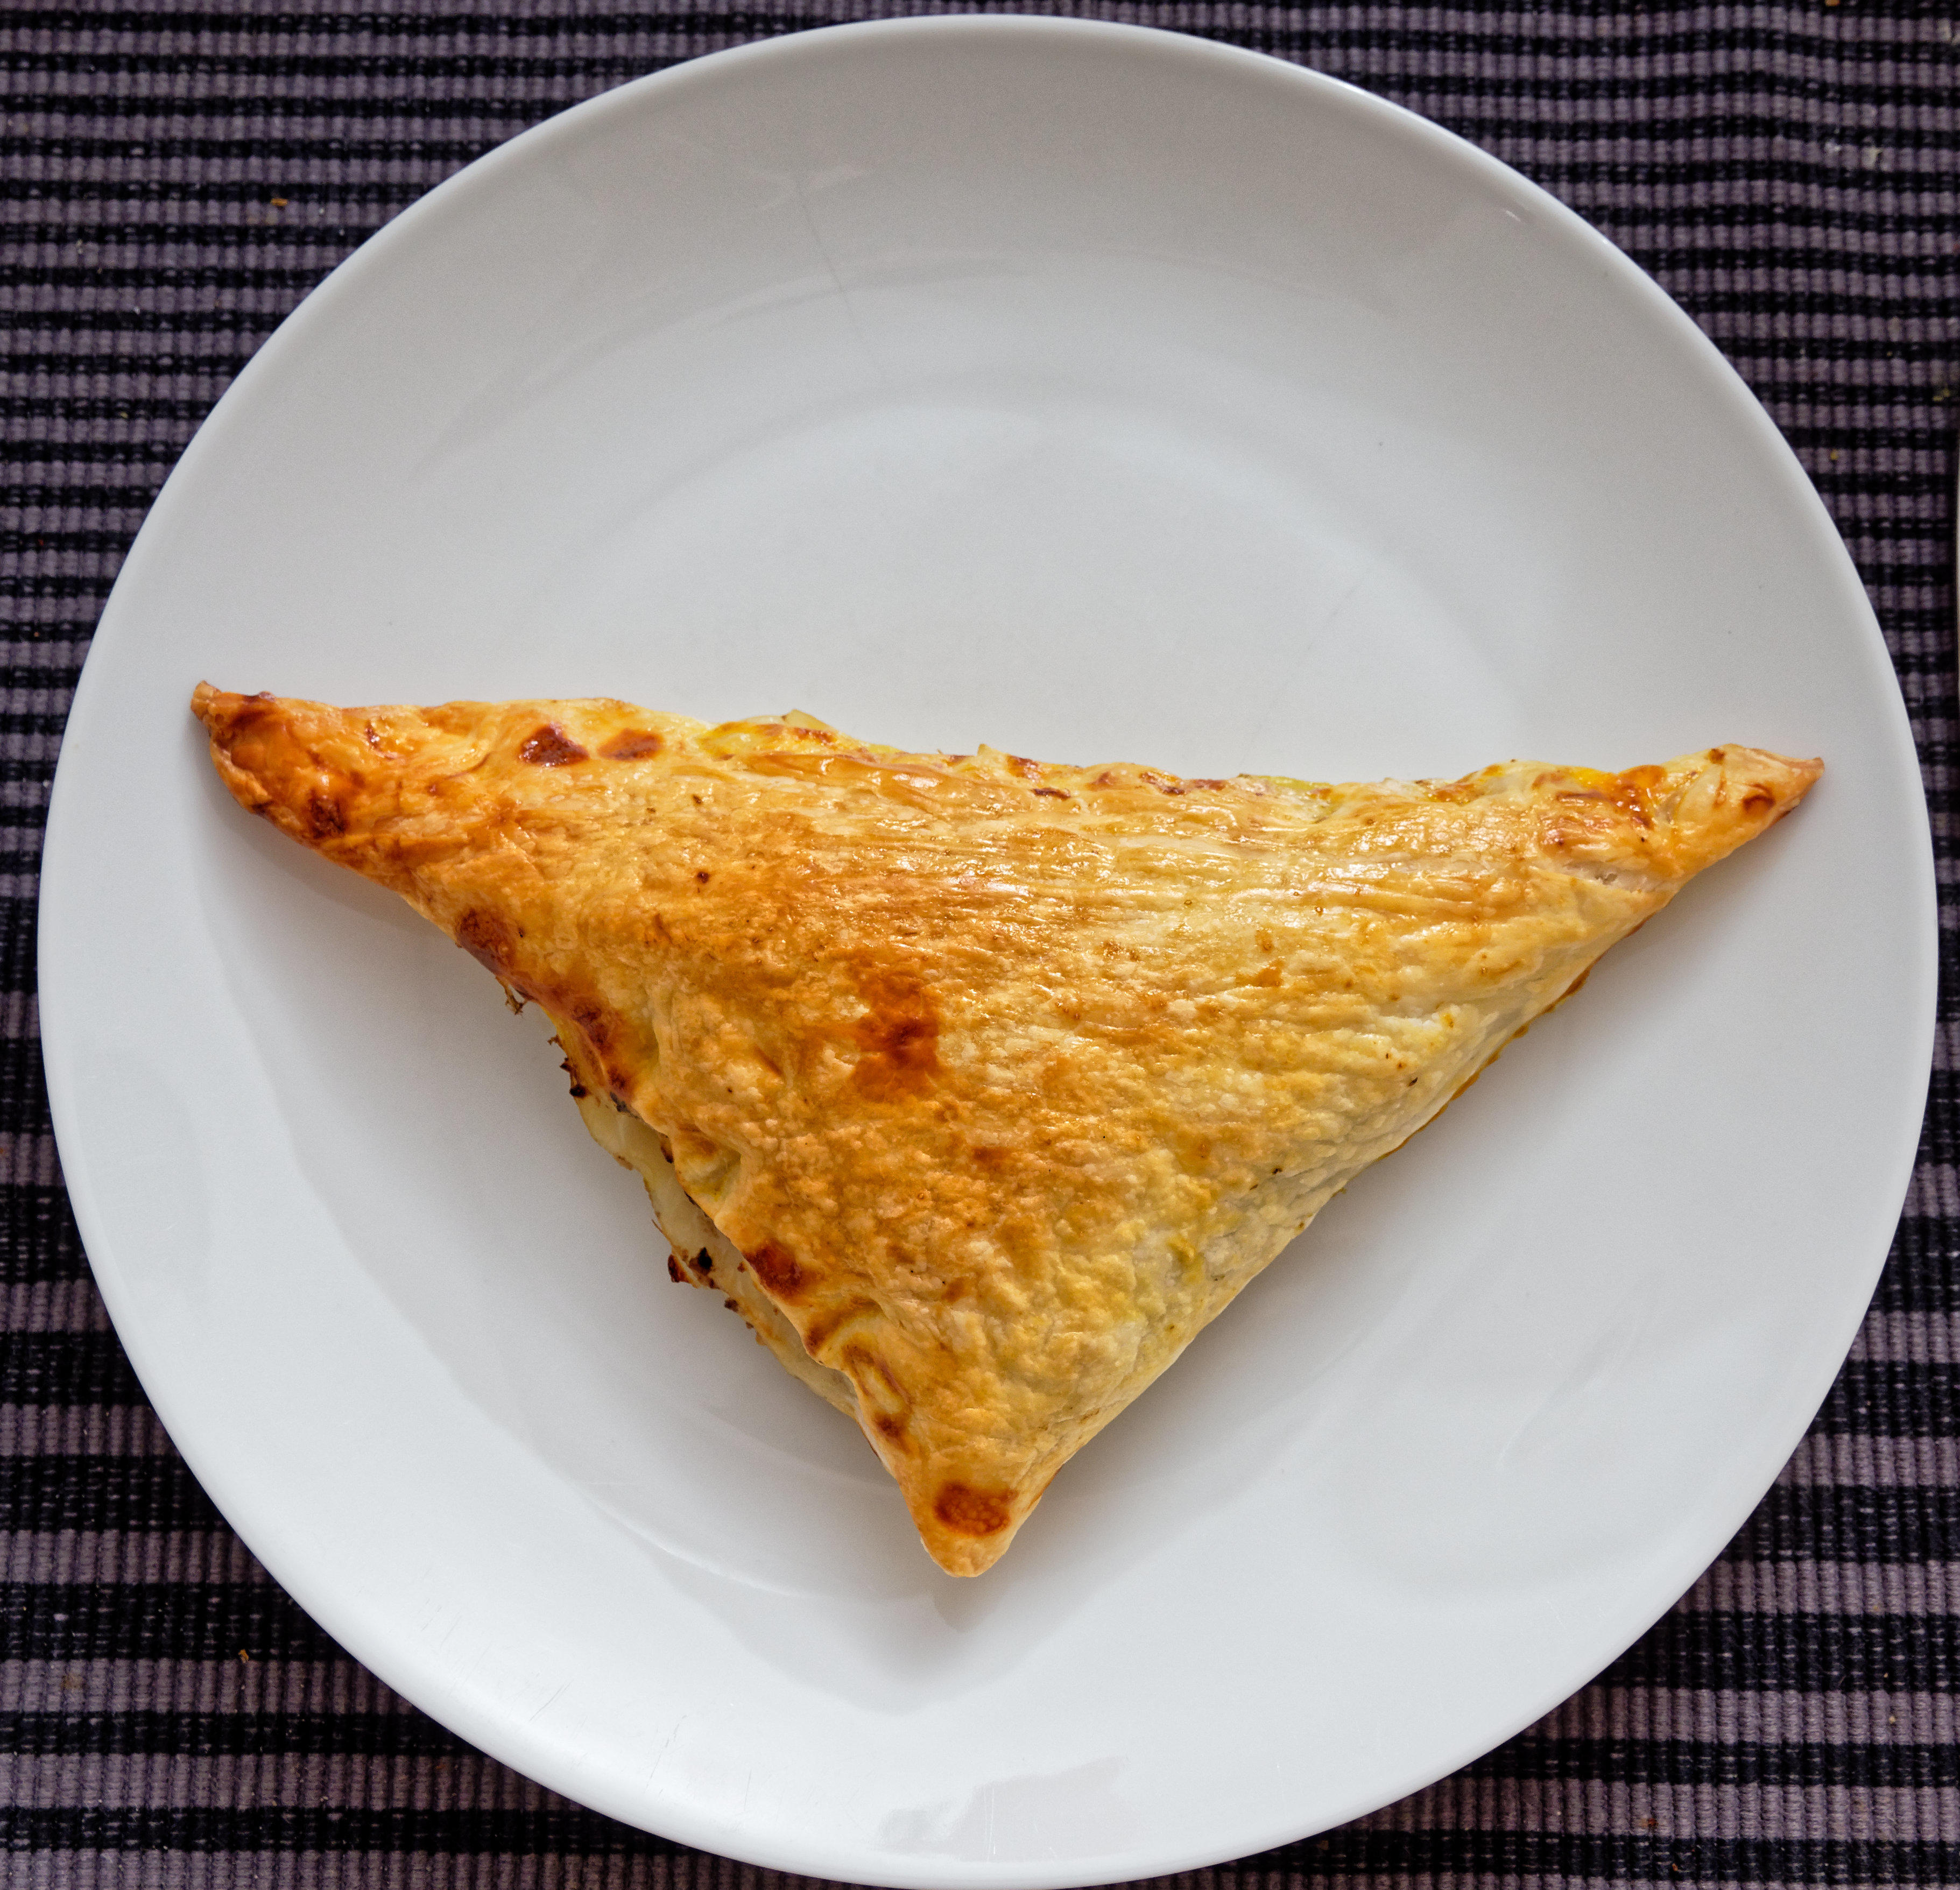 This should be Steak-and-kidney-triangles-3.jpeg.  Is it missing?